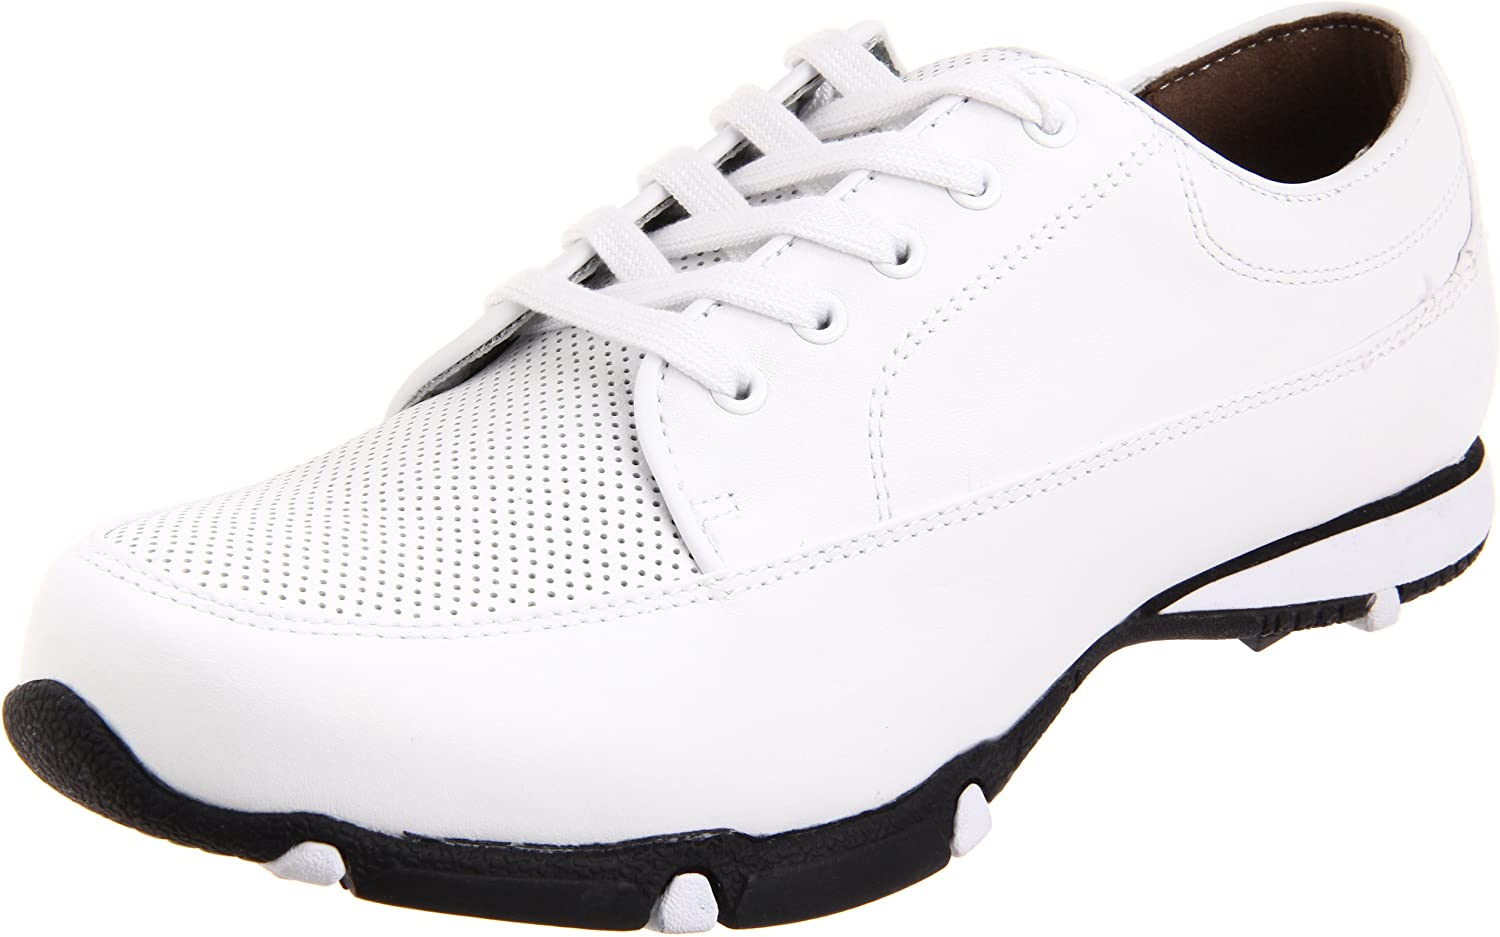 Large-scale sale Max 83% OFF Golfstream Women's Sporty Golf Shoe